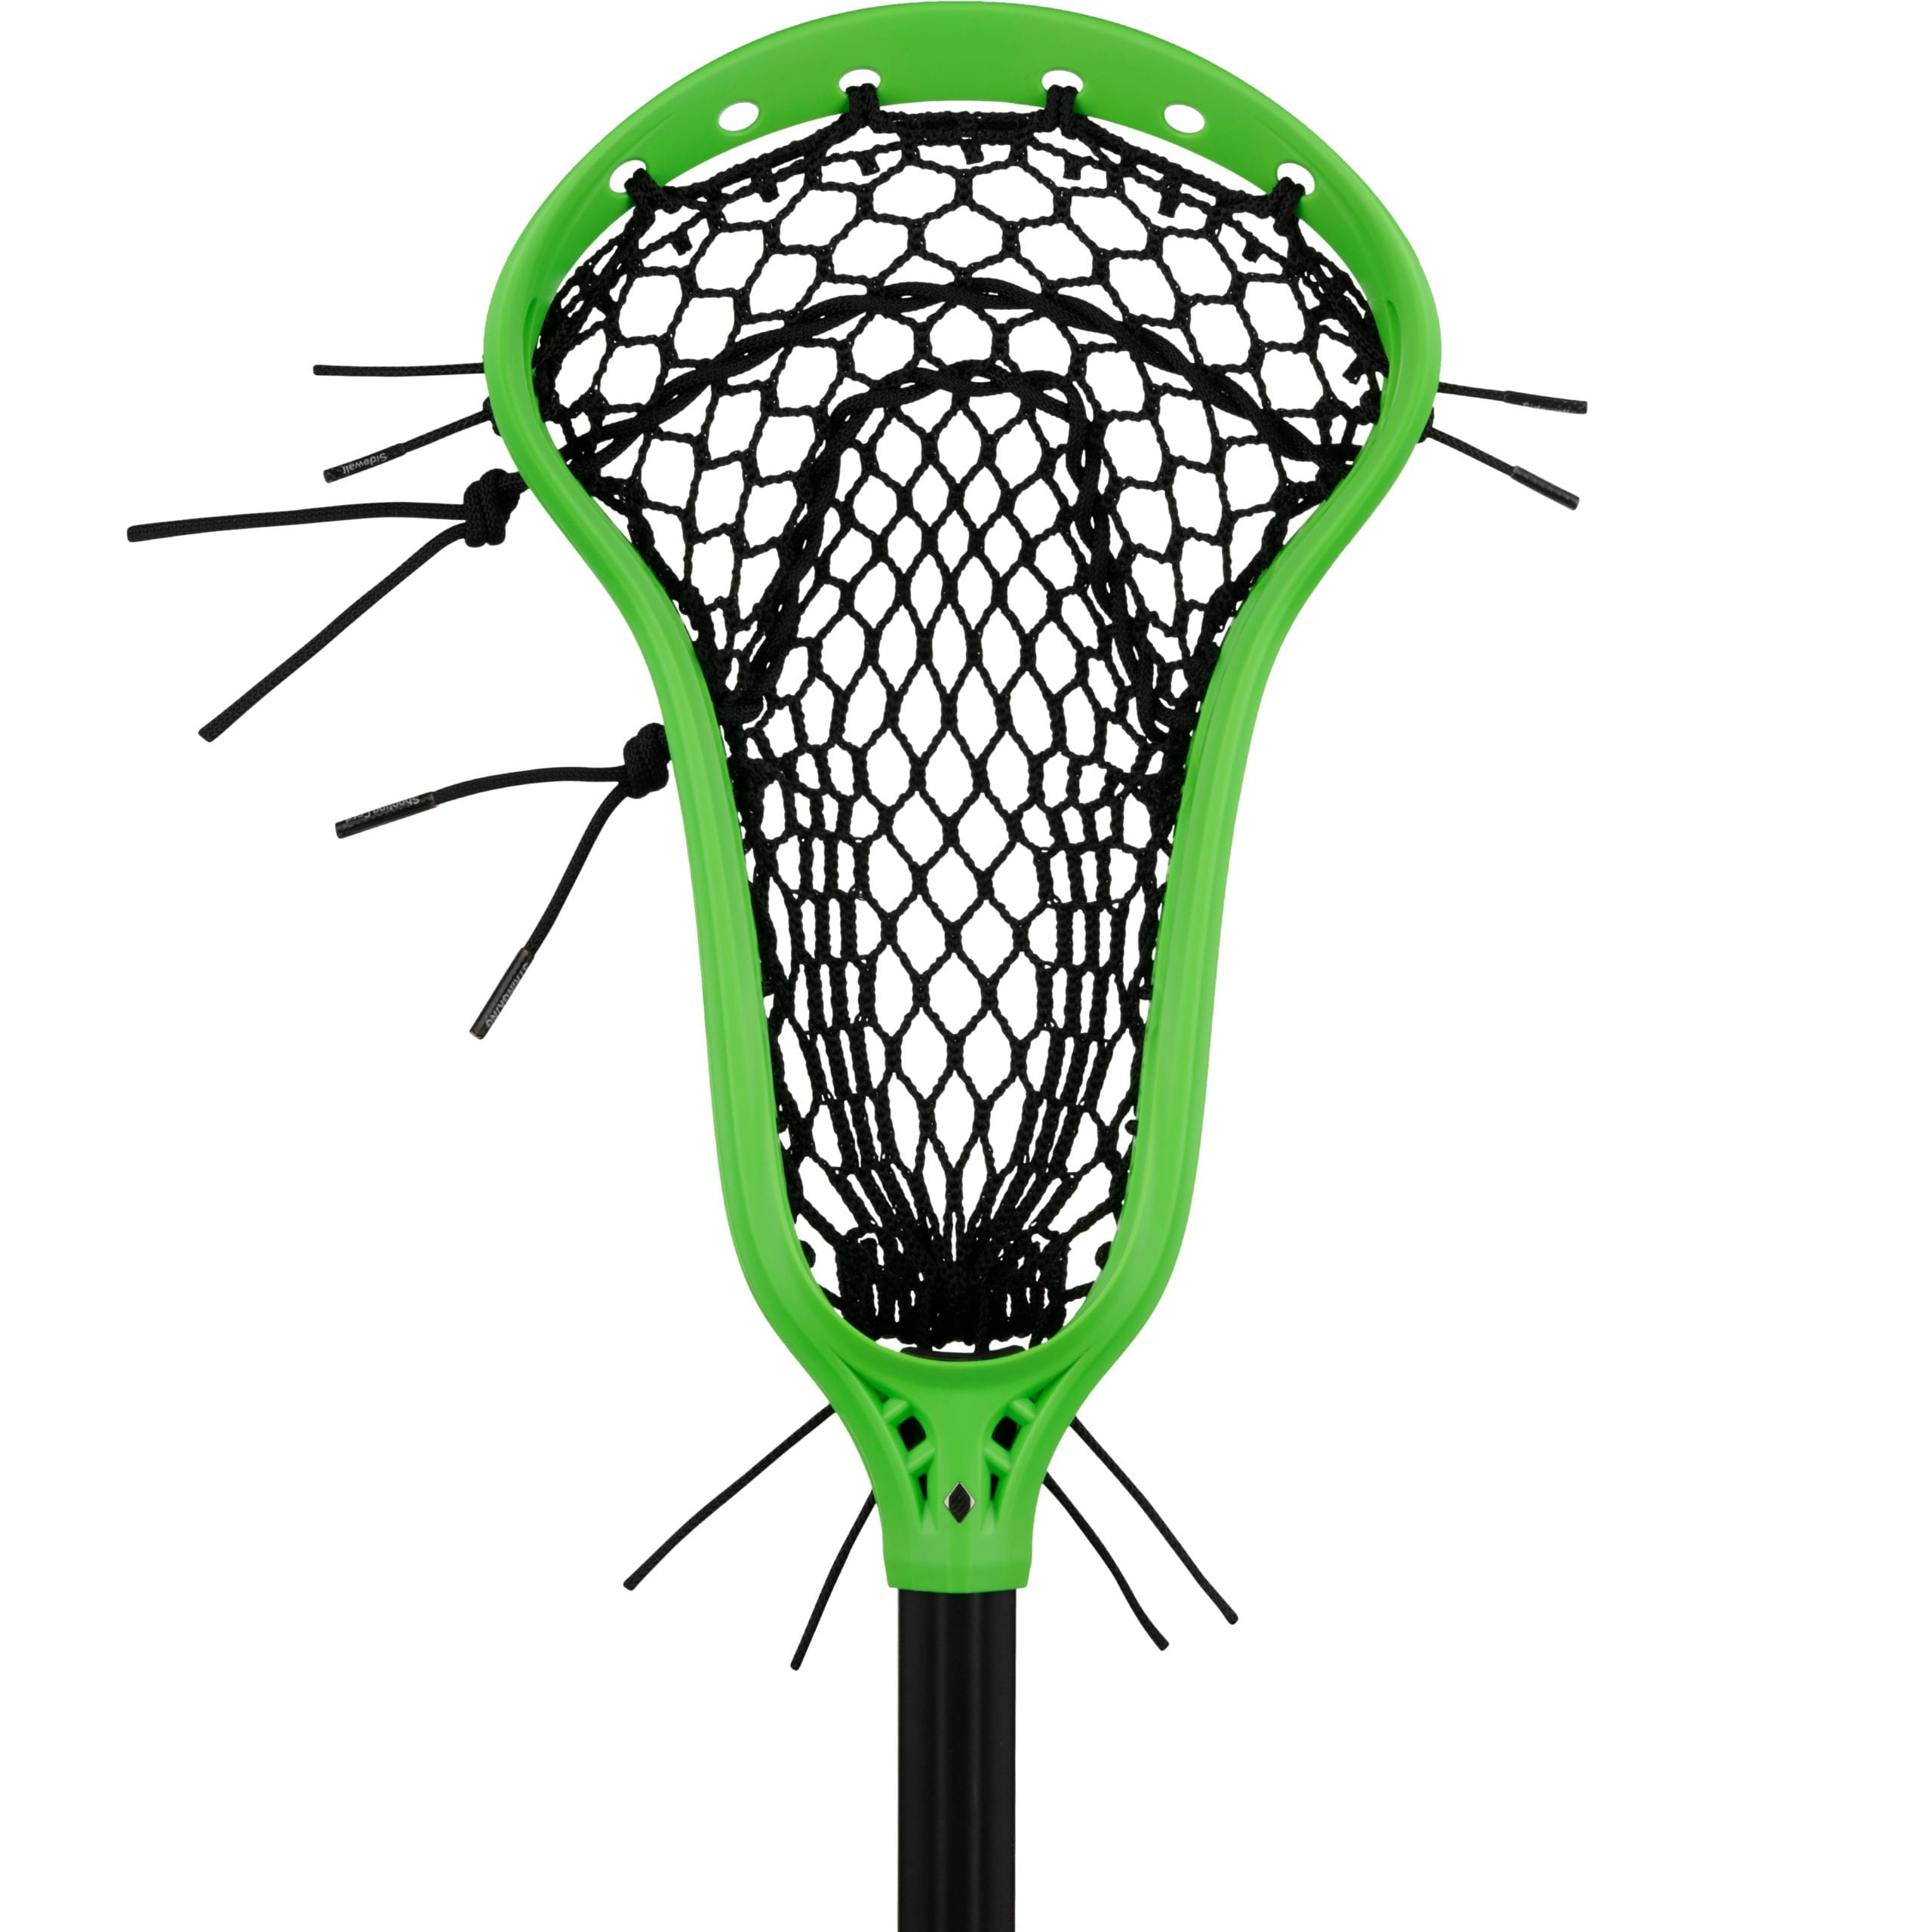 StringKing-Womens-Complete-2-Pro-Midfield-Headstrong-Strung-Gallery-Image-Face-scaled-1.jpg